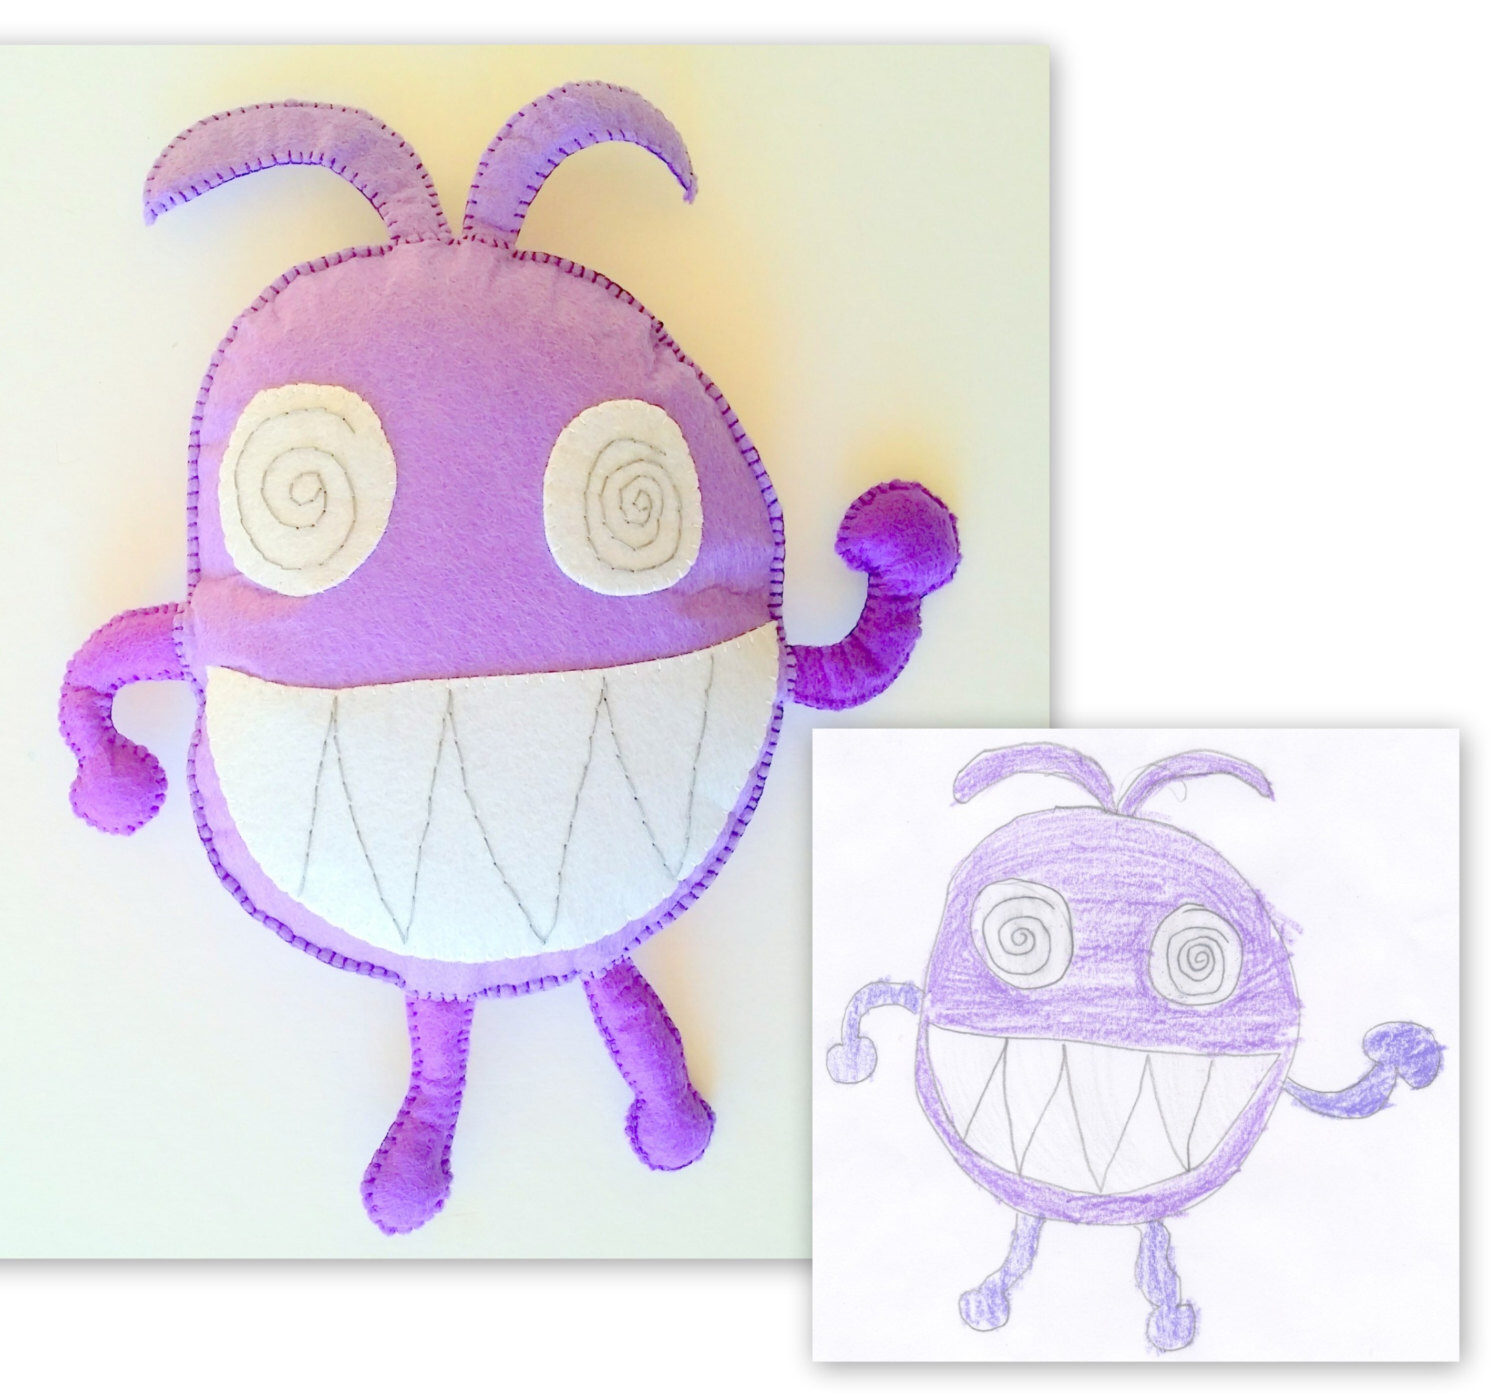 1500x1393 Personalized Gift Toy Monster, Plush Kids Drawing, Doll